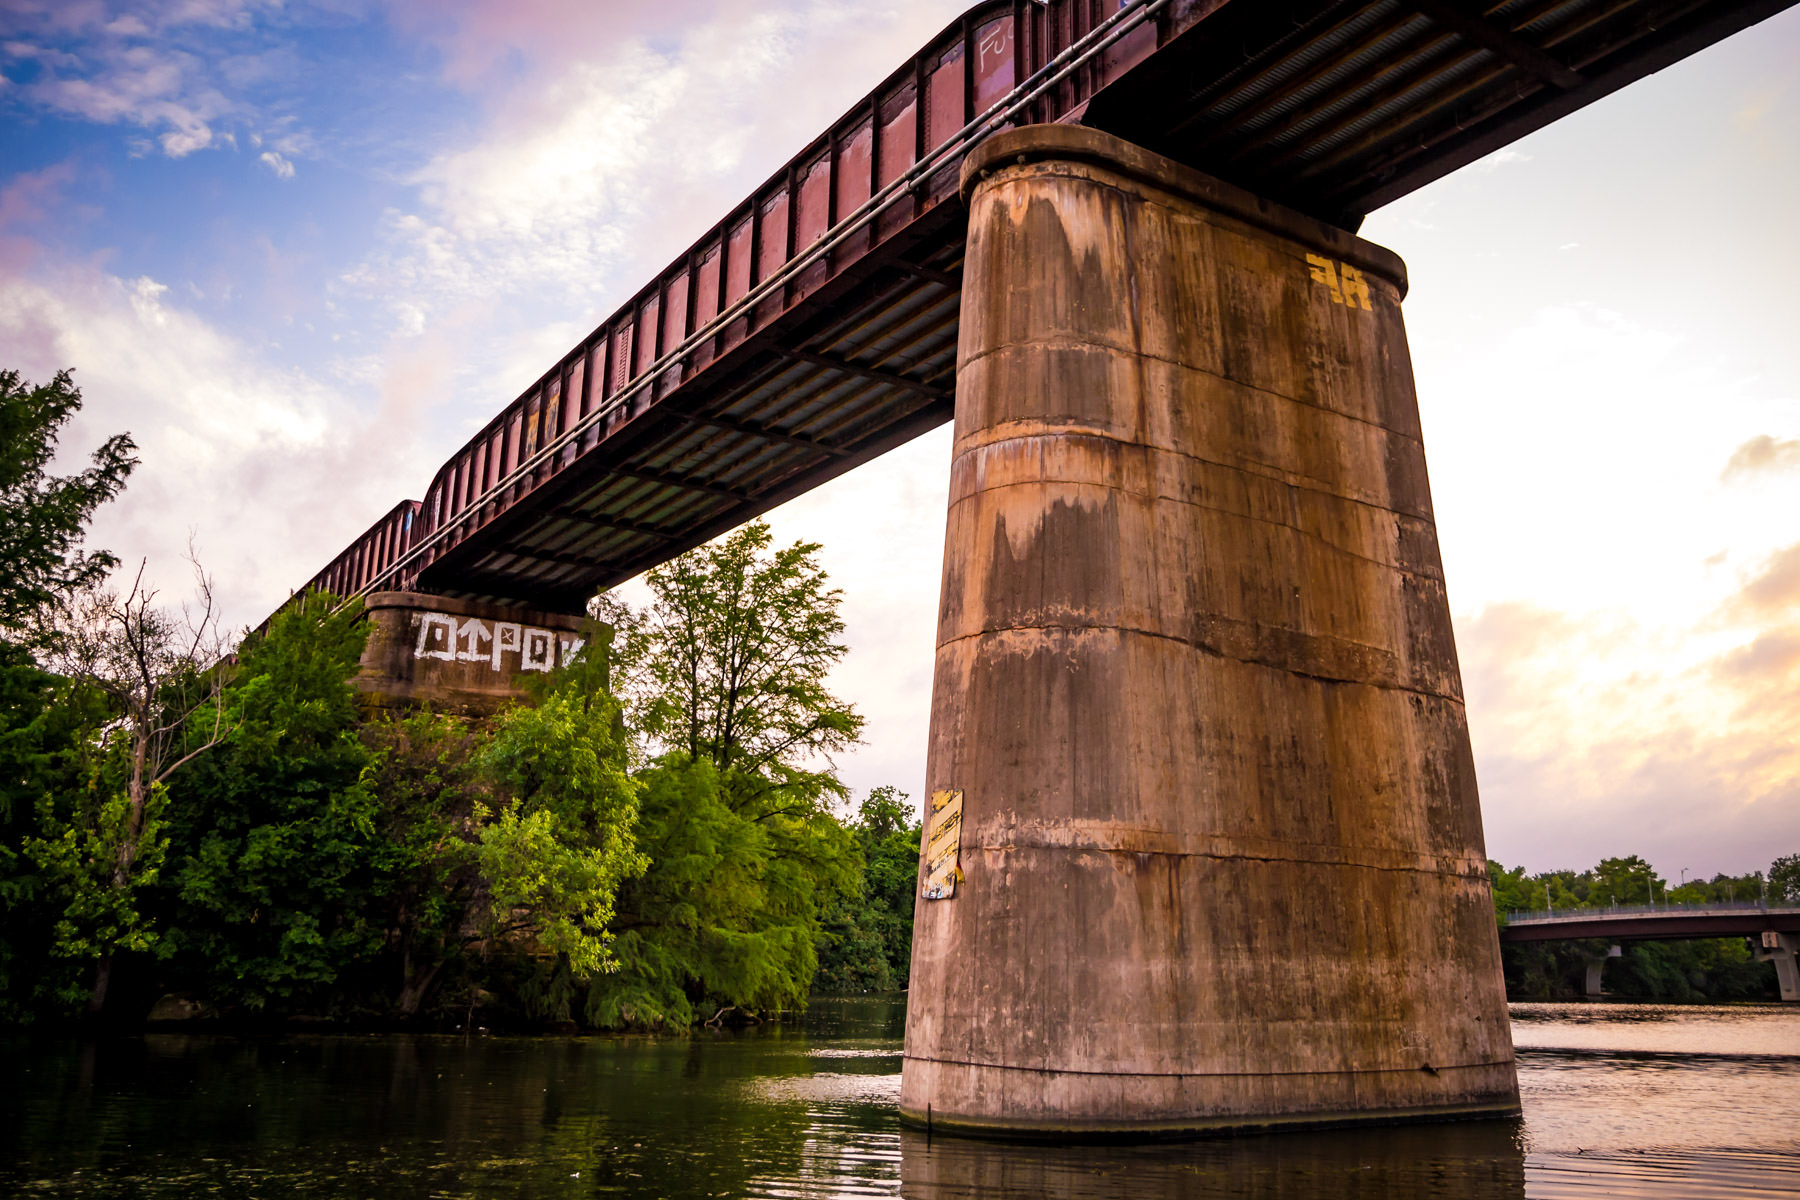 The Union Pacific Railroad passes over Lady Bird Lake as the sun sets on Austin, Texas.